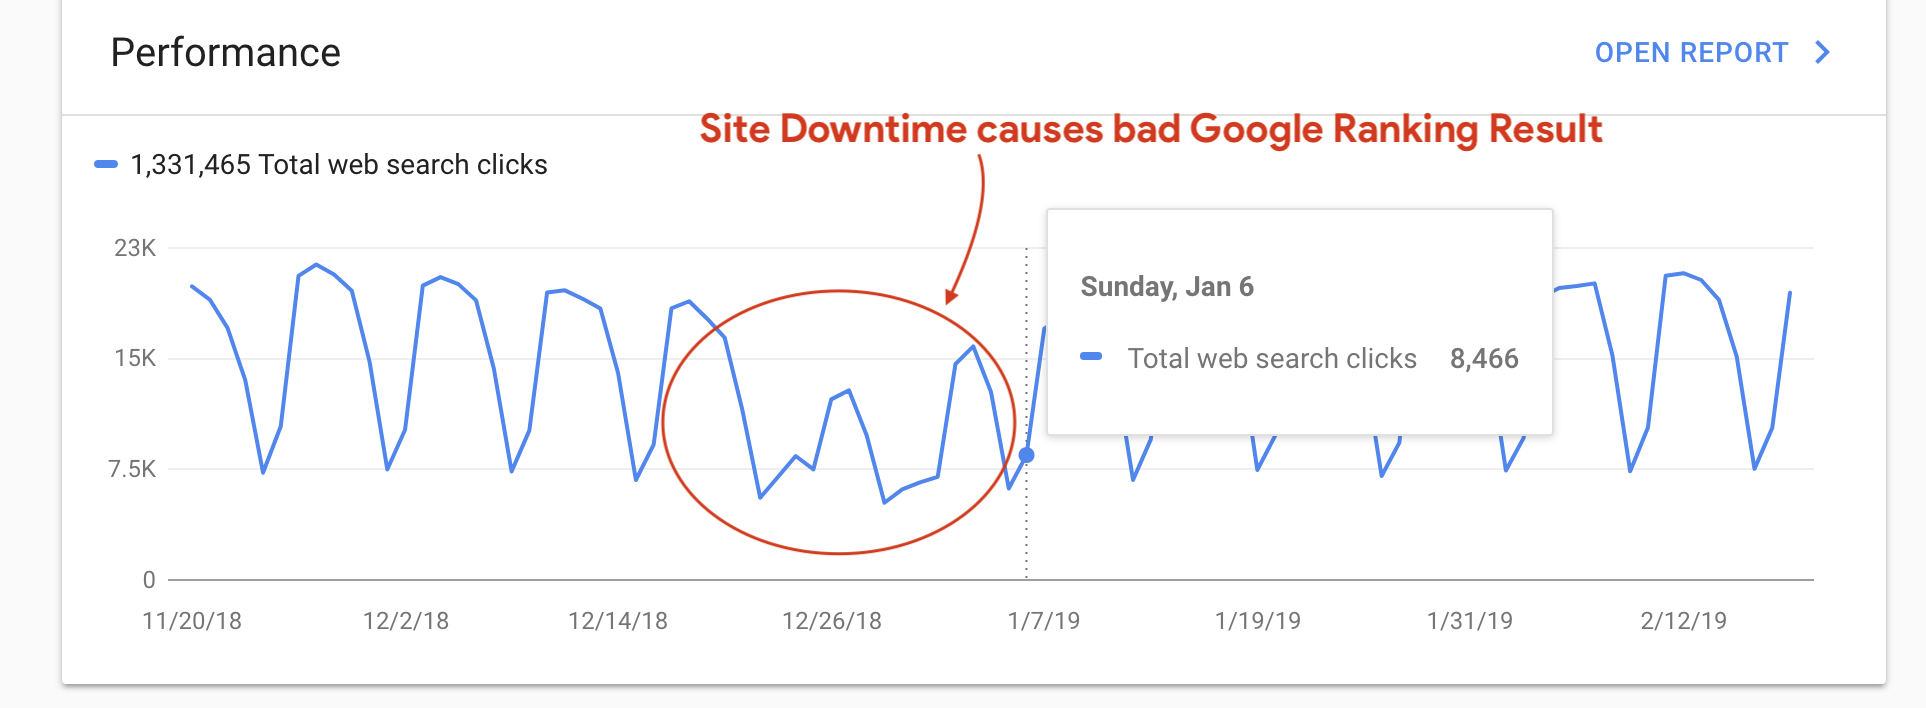 Site Downtime causes bad Google Ranking Result